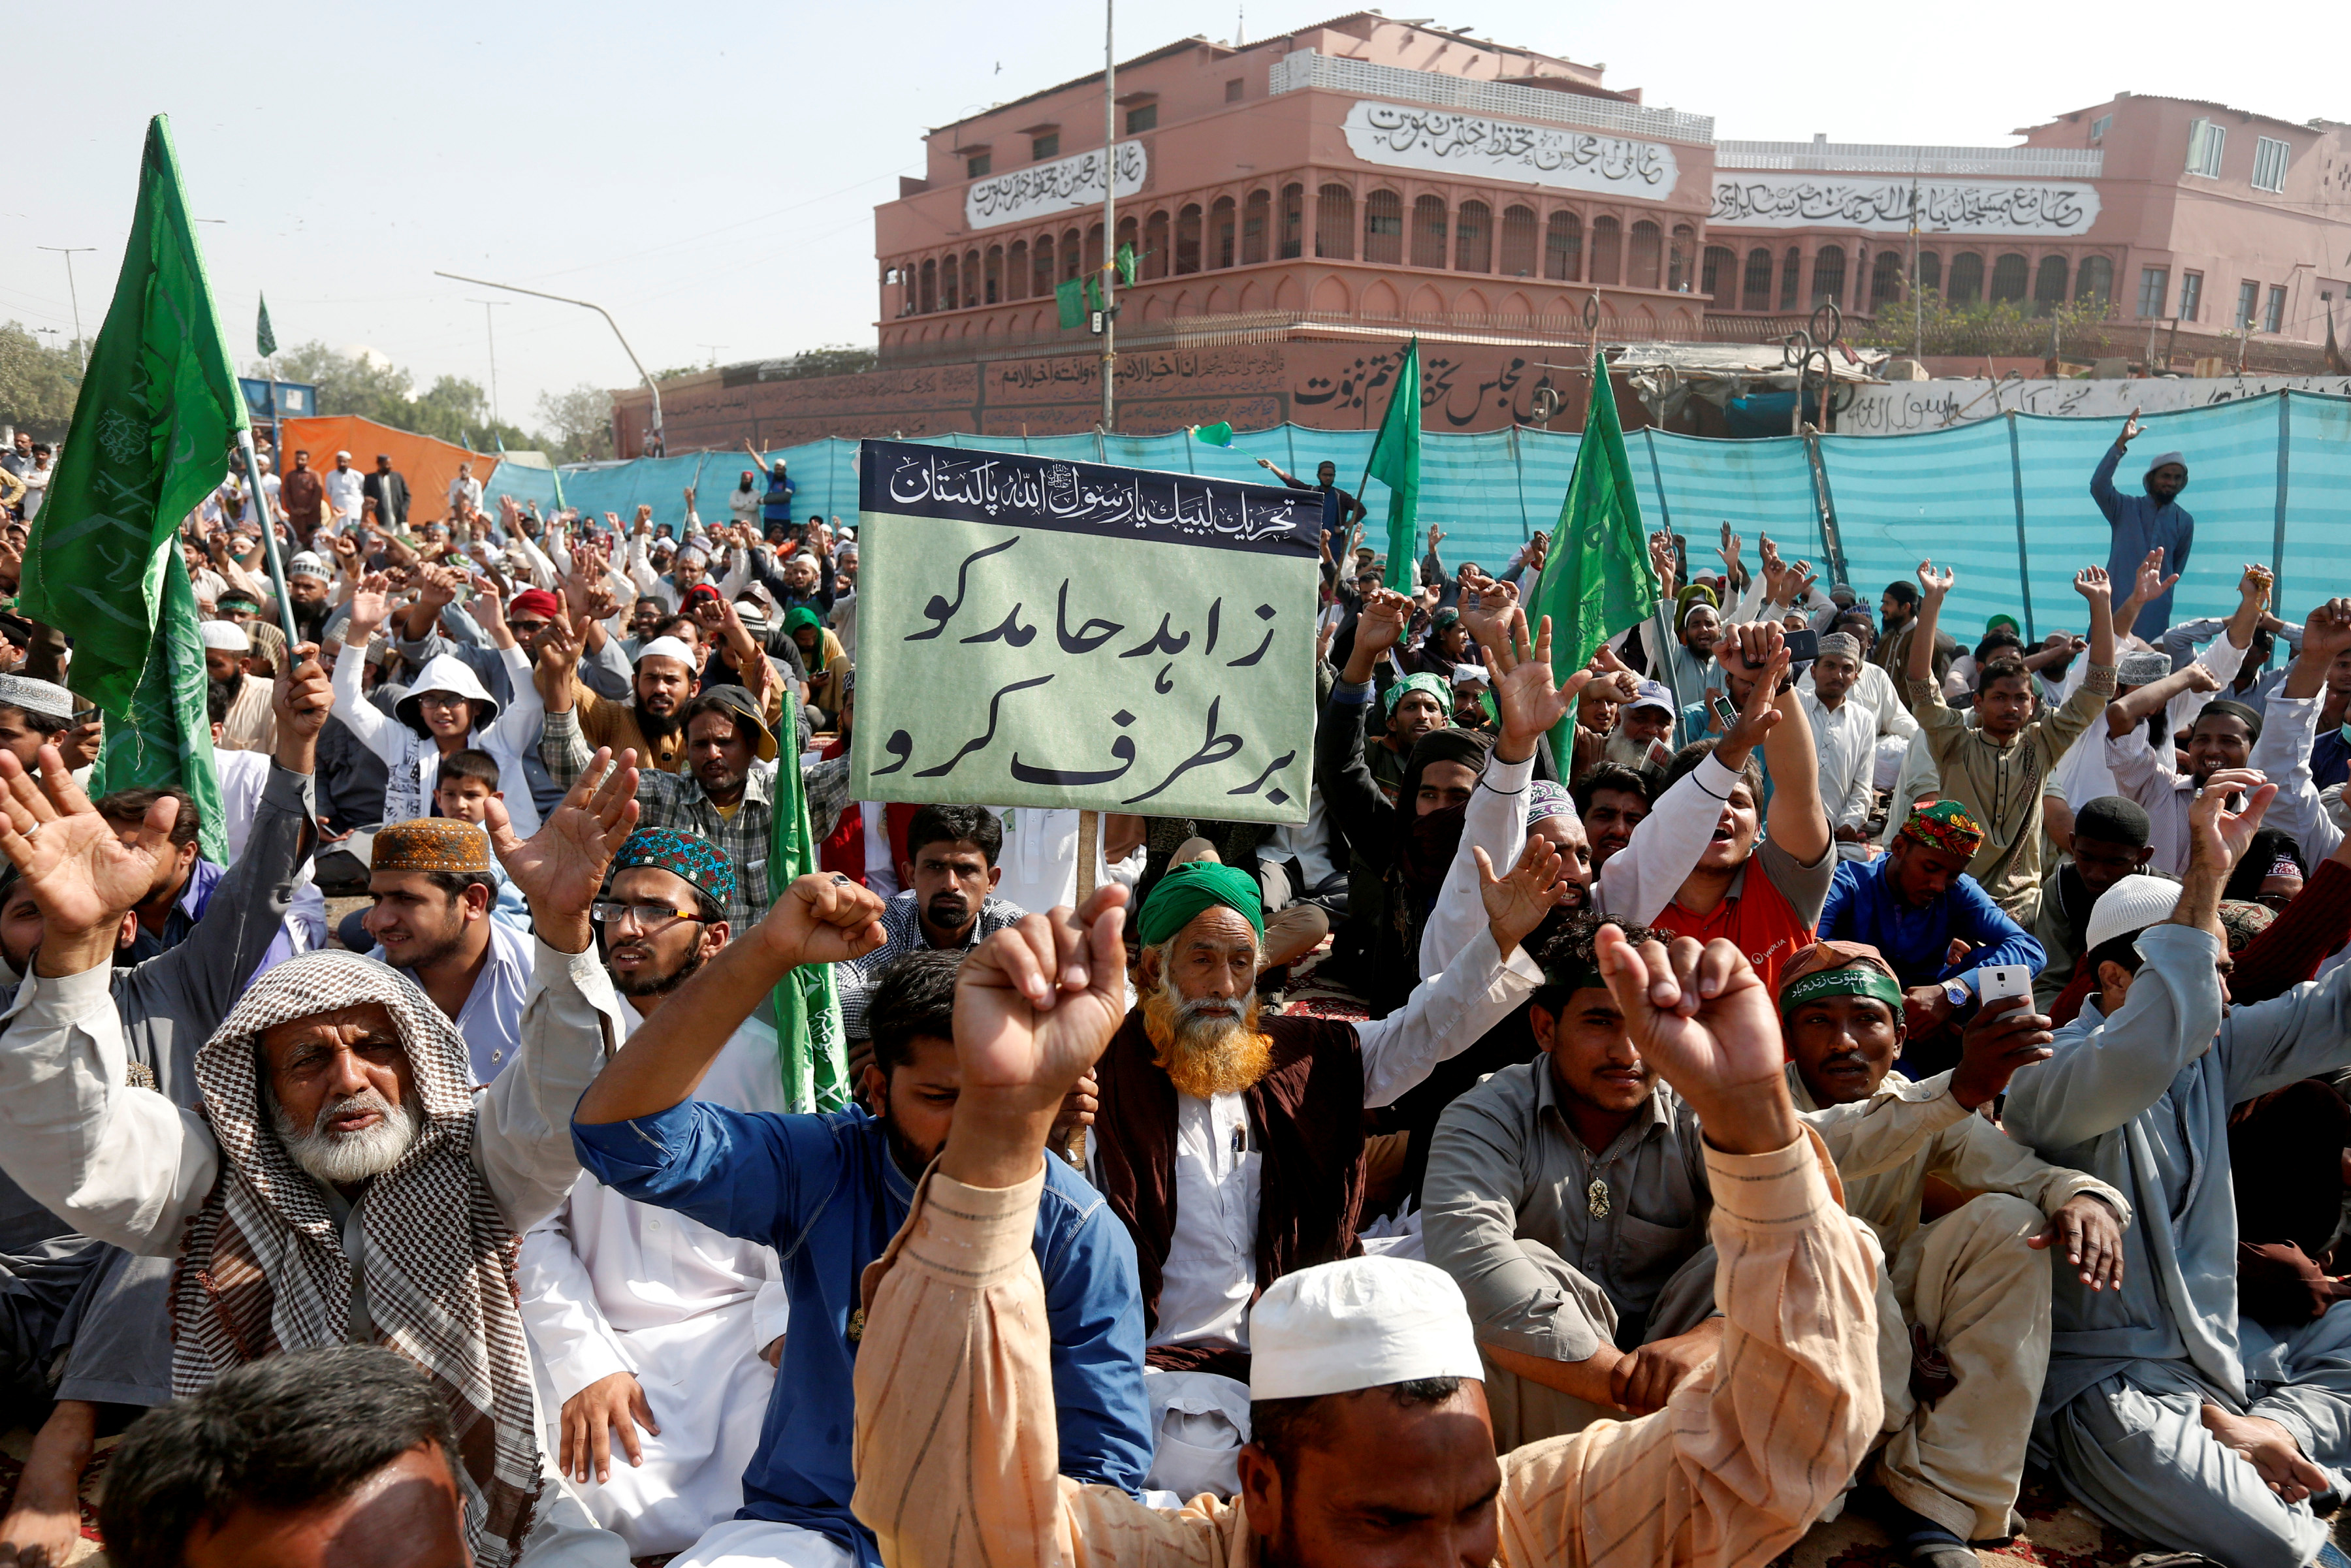 """A supporter of the Tehreek-e-Labaik Pakistan, an Islamist political party, holds a sign, which reads in Urdu, """"remove Zahid Hamid"""" during a sit-in protest along a main road in Karachi, Nov. 27, 2017."""